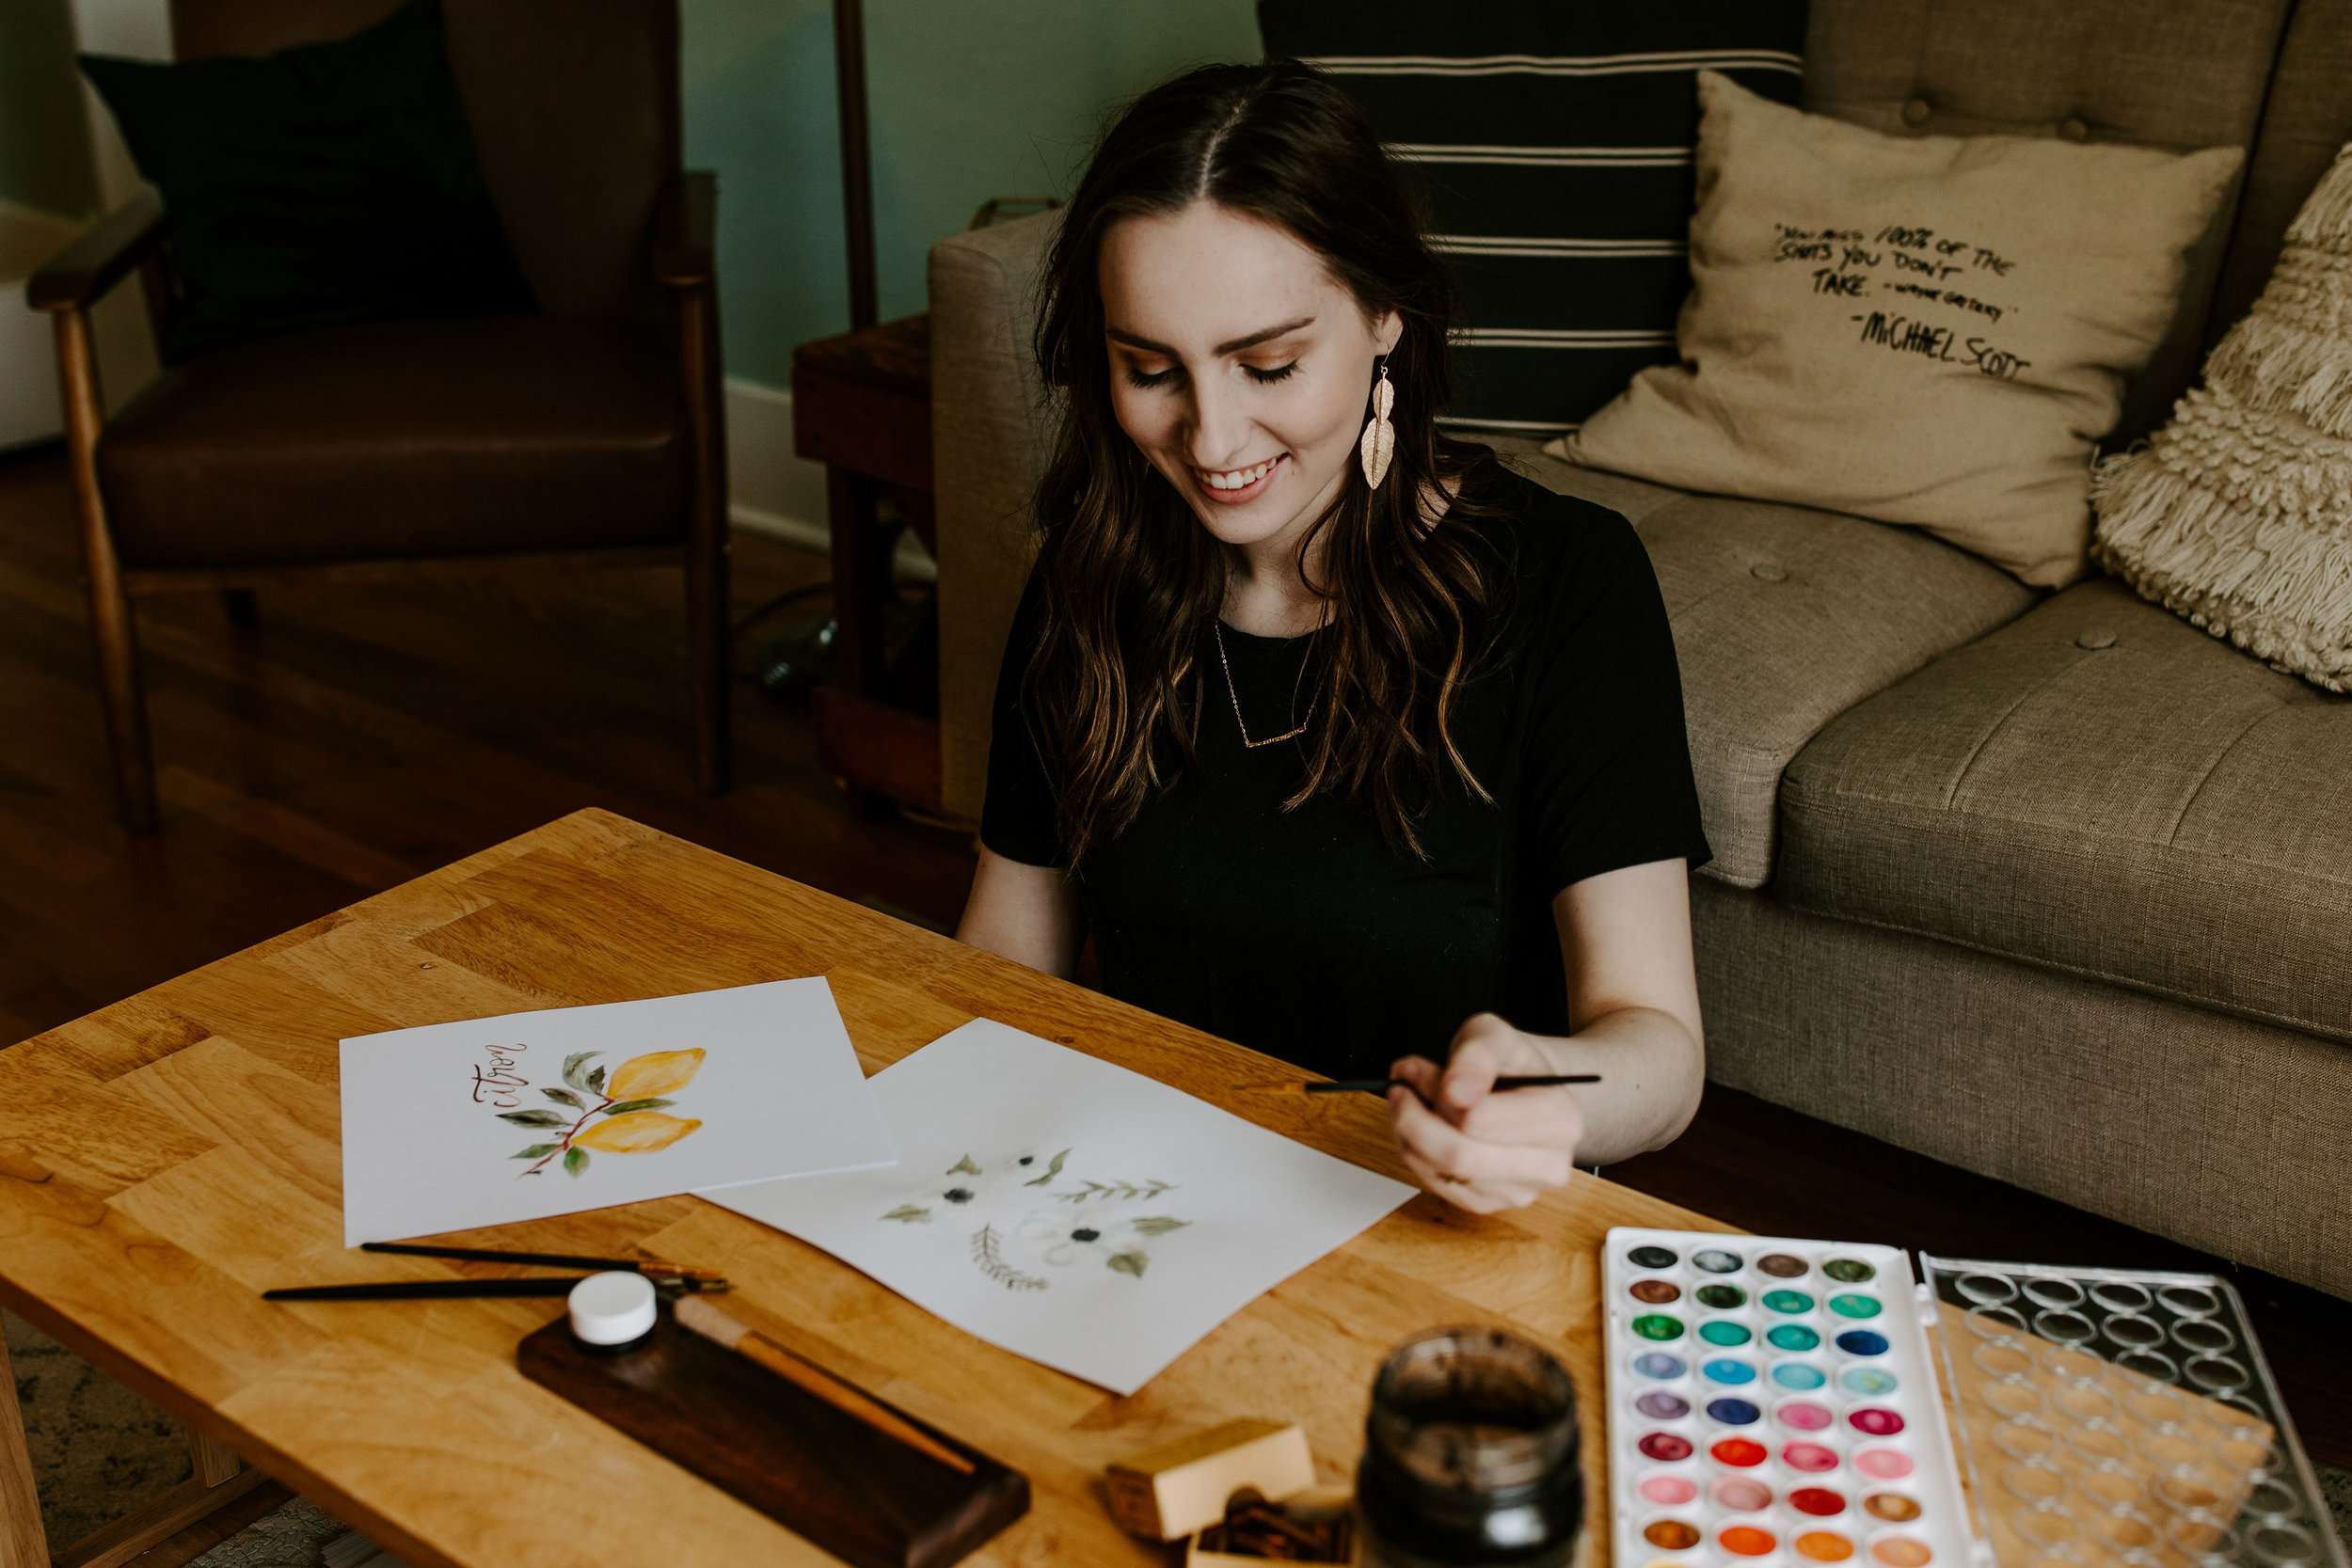 M E E T T A R A - Tara is the left-handed calligrapher and designer behind all that you see here. Her creative vision paired with modern script makes for whimsical and classic designs.